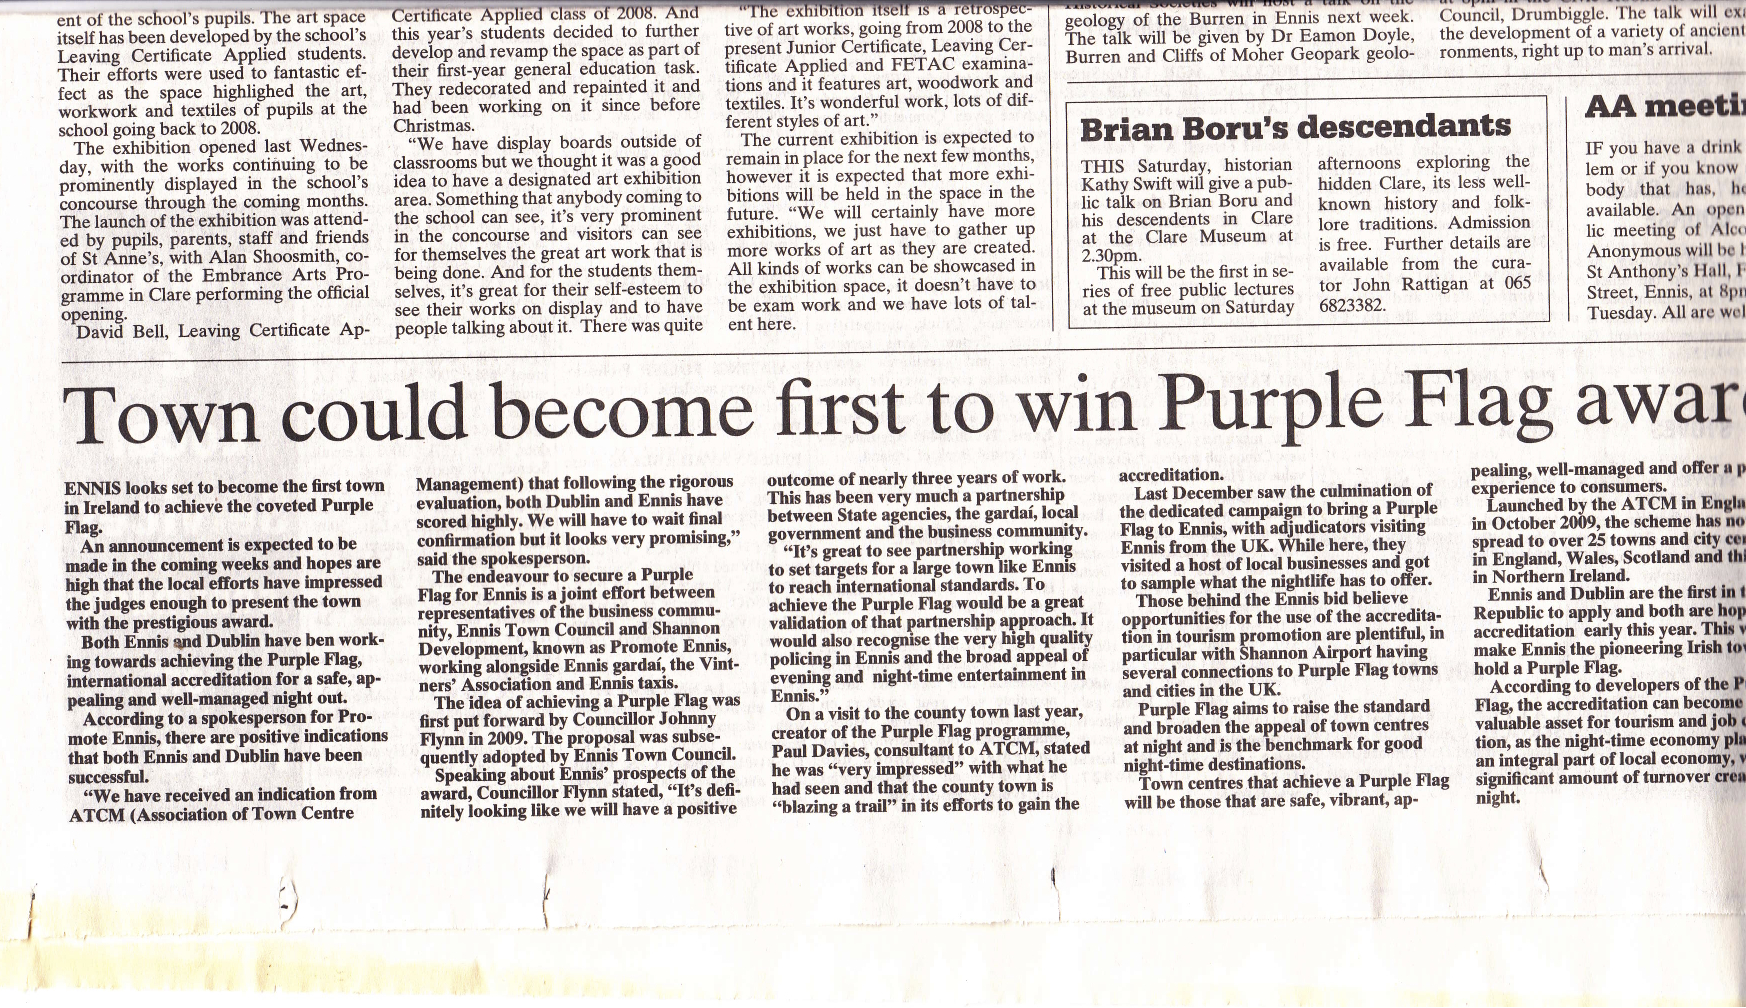 Purple Flag_TowncouldbeFirst.jpeg